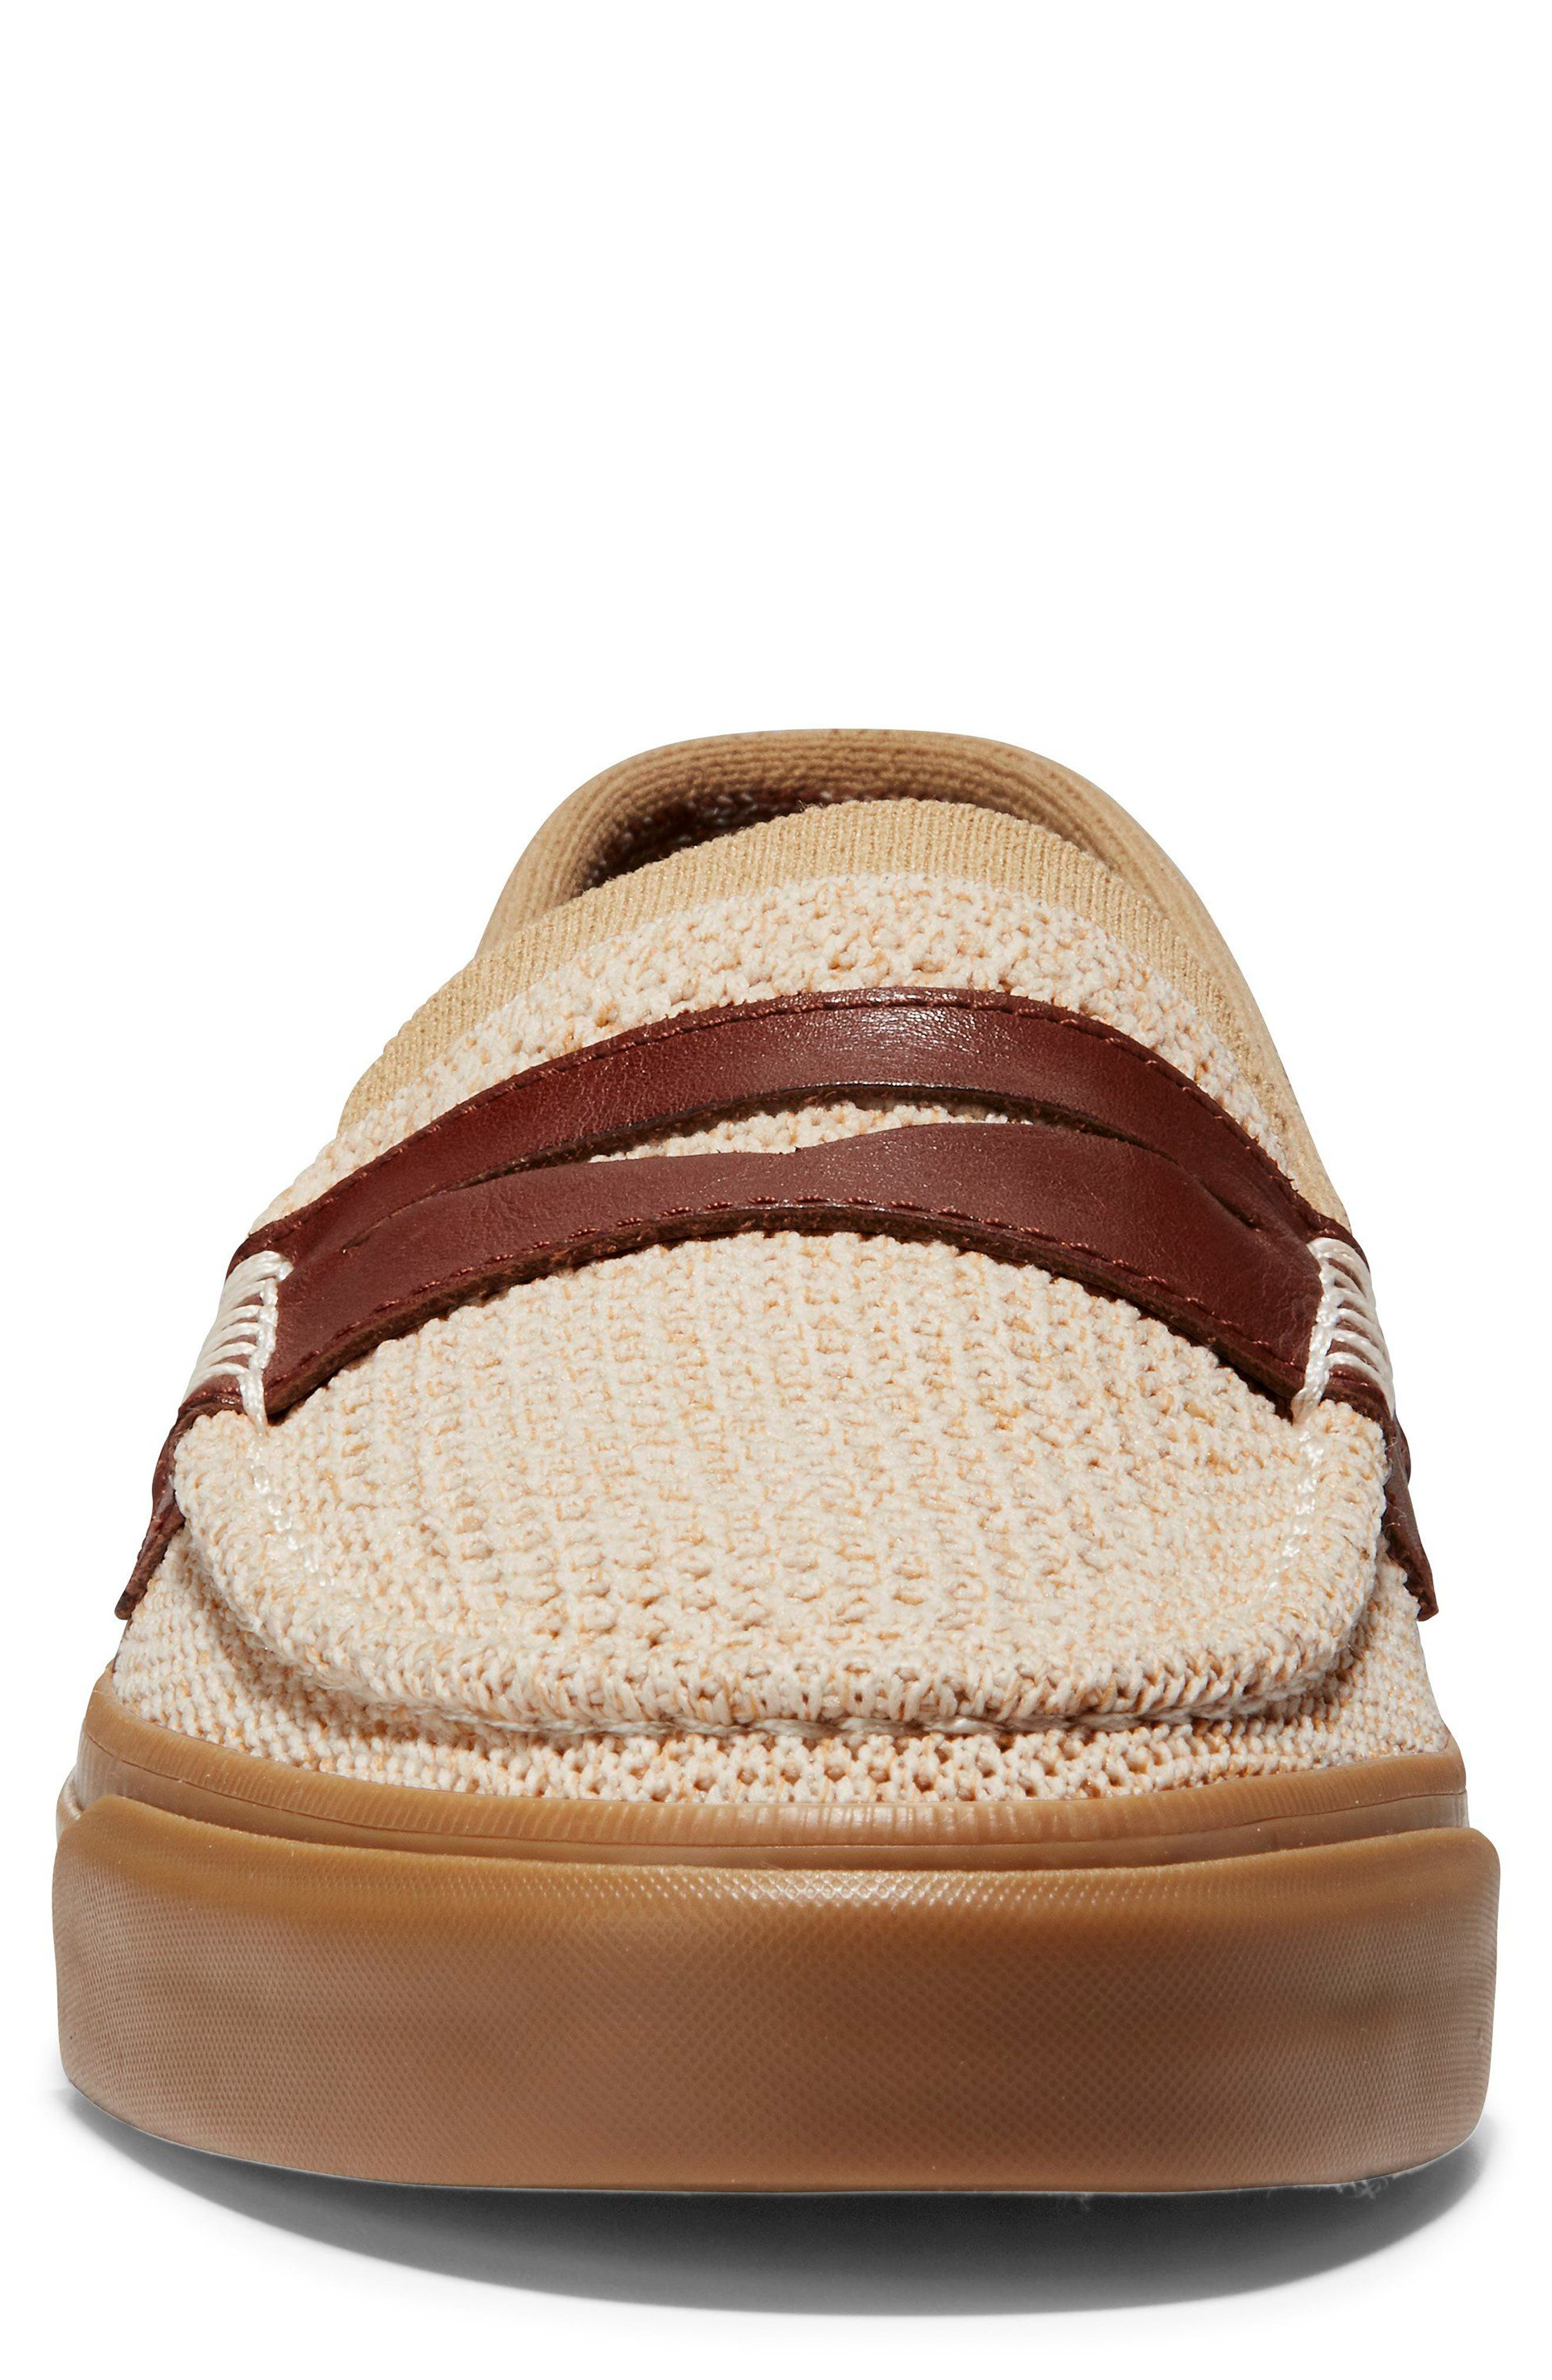 Pinch Weekend Stitch Penny Loafer,                             Alternate thumbnail 4, color,                             Iced Coffee/ Sand/ Woodbury